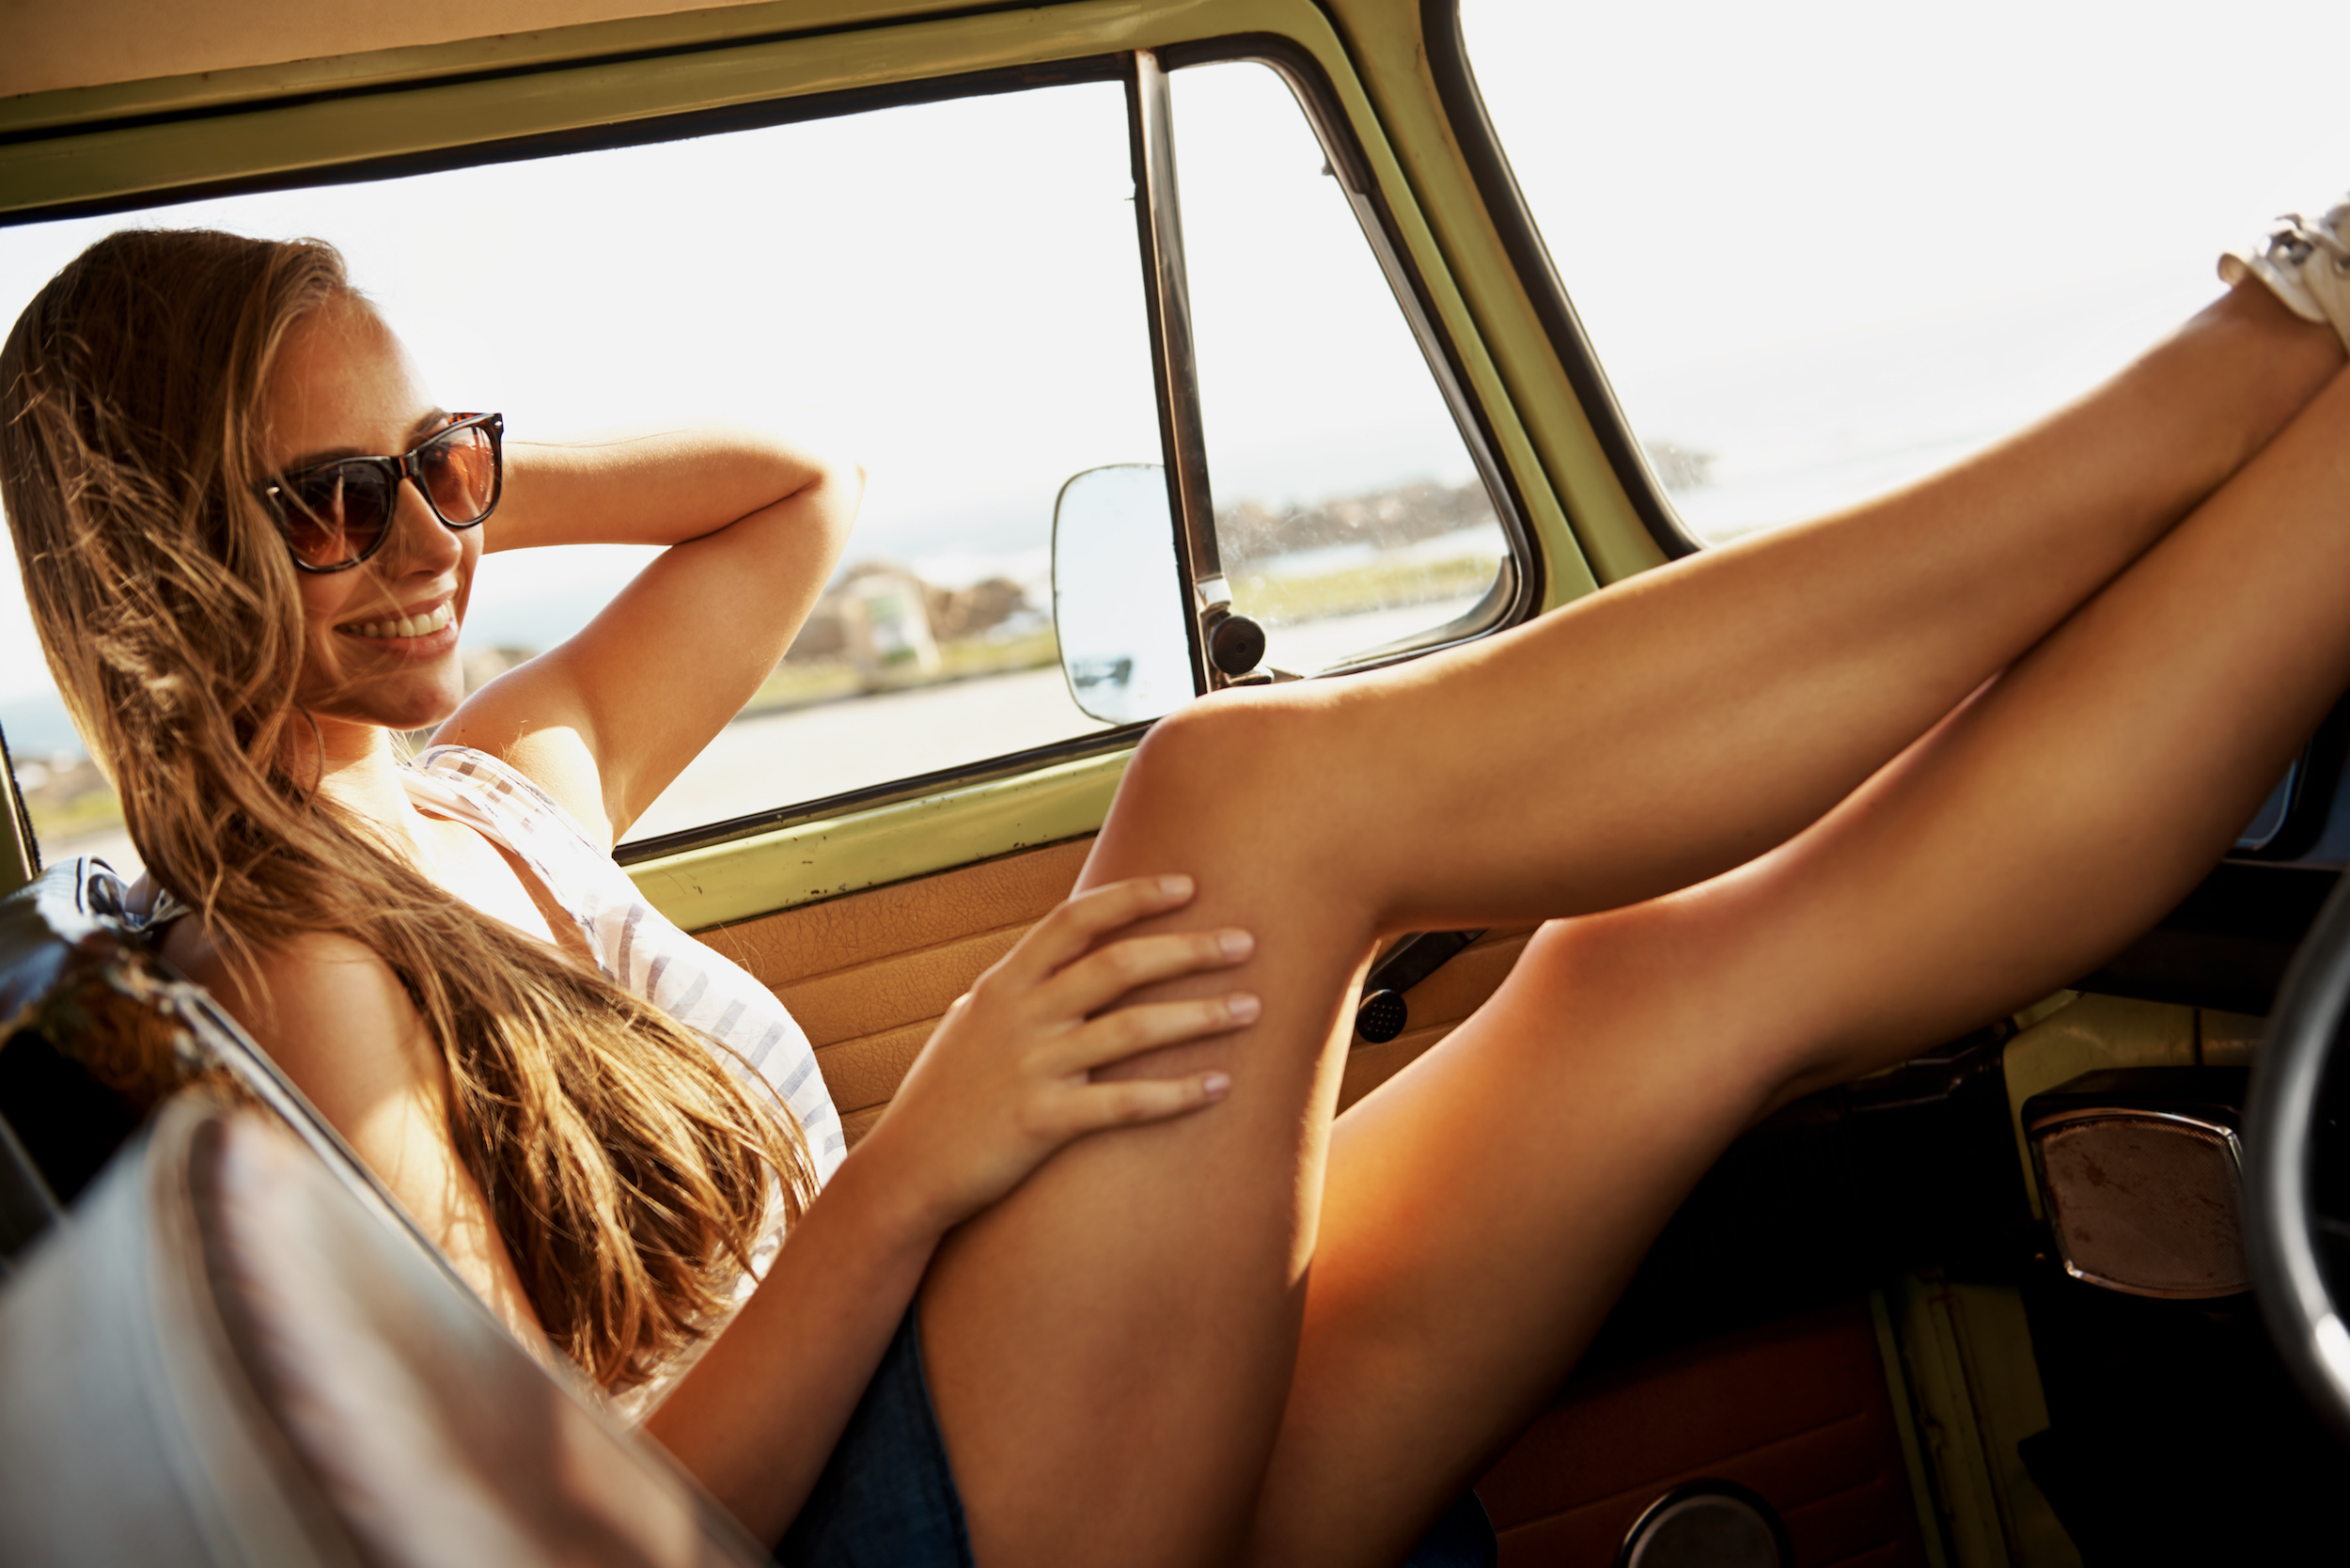 A young woman relaxing in a van during a road trip http://195.154.178.81/DATA/istock_collage/0/shoots/784360.jpg